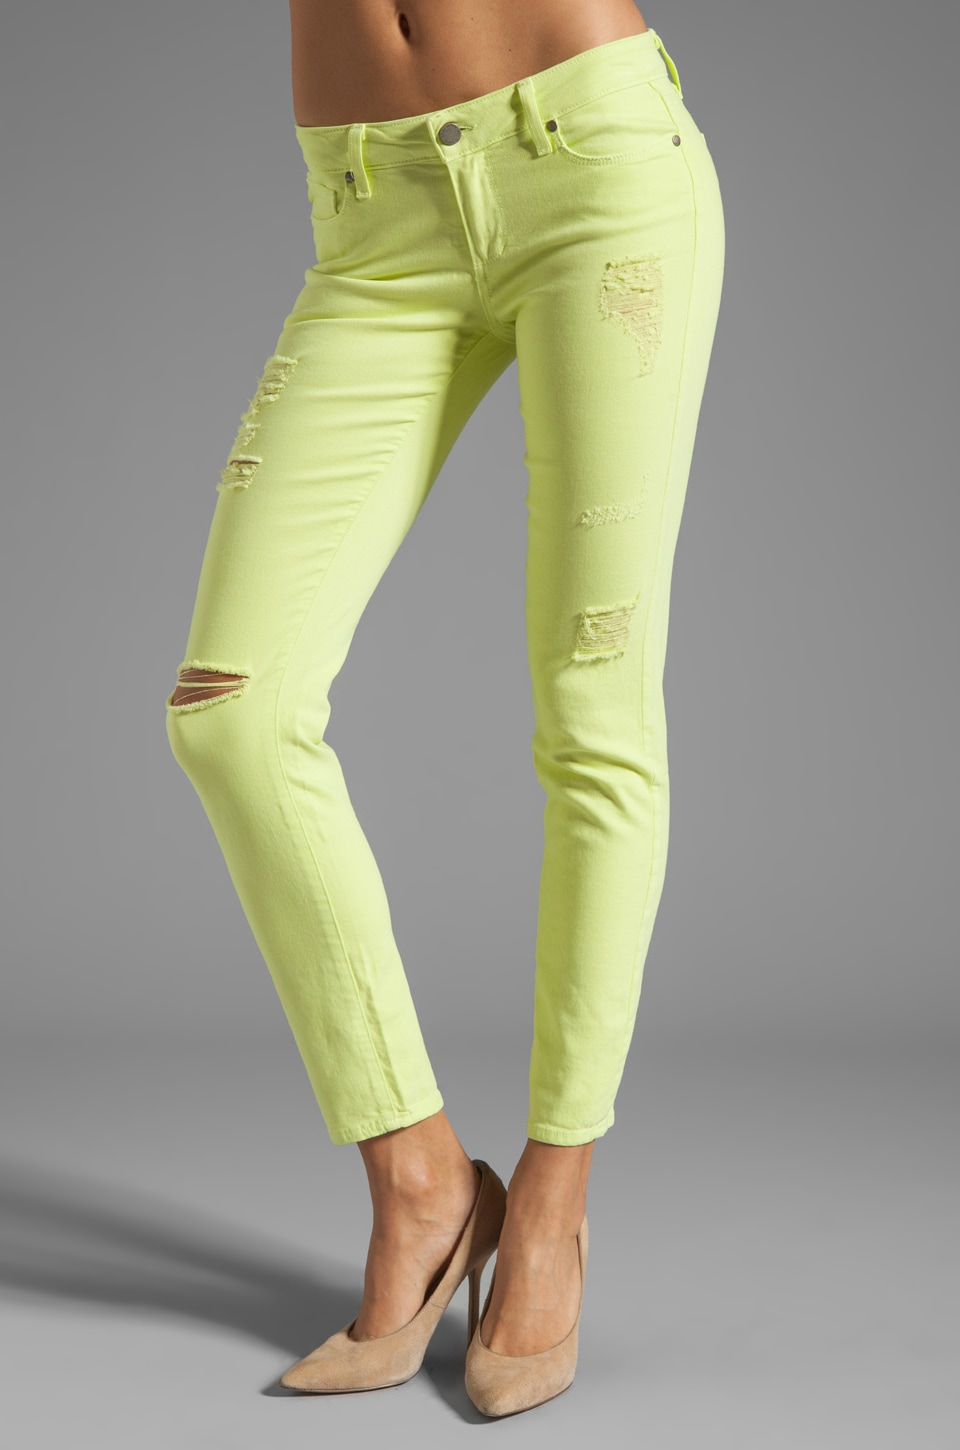 Paige Denim Destructed Skyline Ankle Peg in Citron